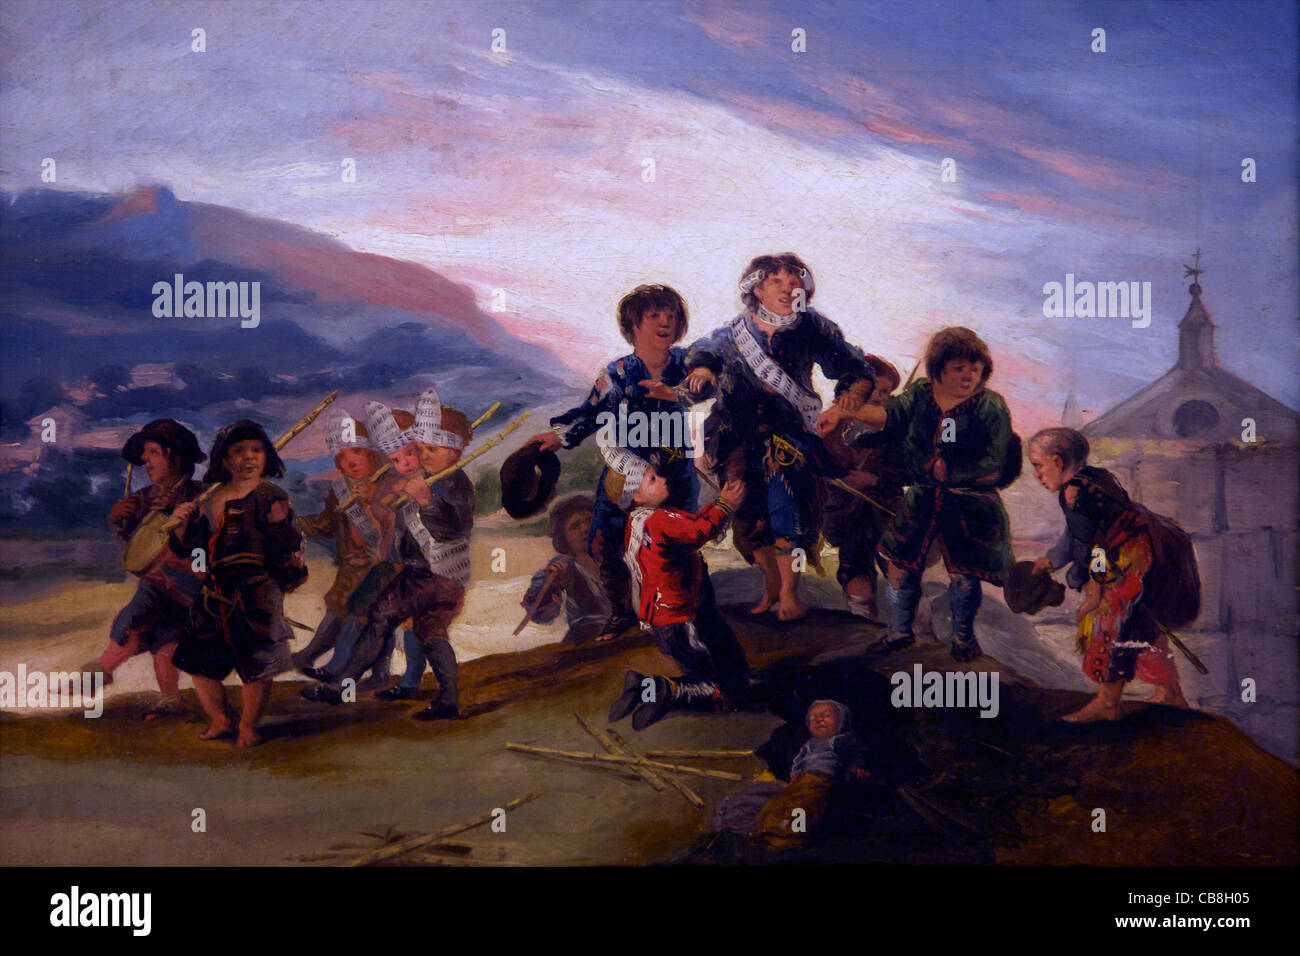 Boys Playing at Soldiers by Francisco de Goya y Lucientes, 1776-1786, Royal Academy of San Fernando Madrid Spain - Stock Image